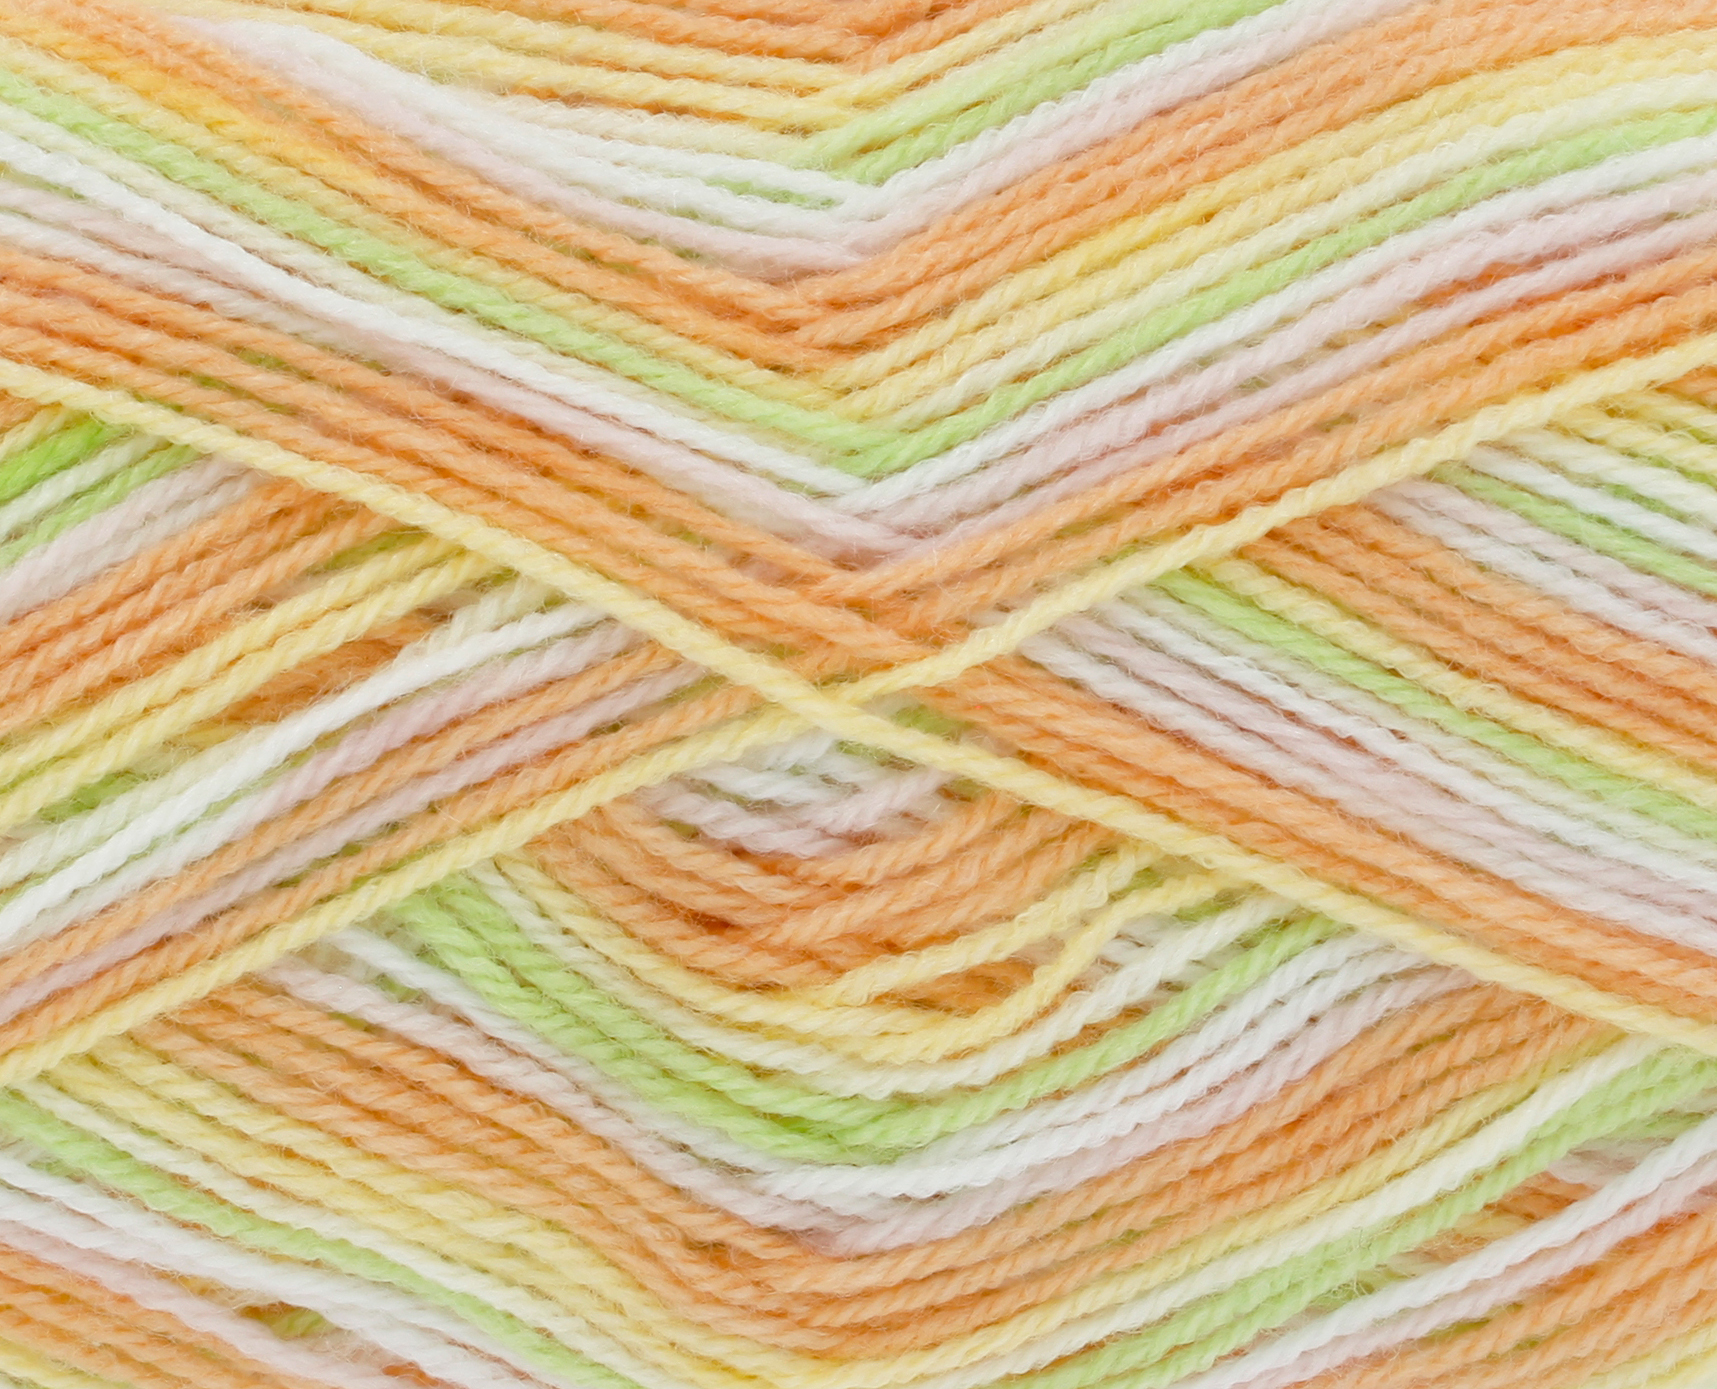 King Cole BABY PRINT 4PLY Double Knitting Wool 3262 RAINBOW Yarn 100g